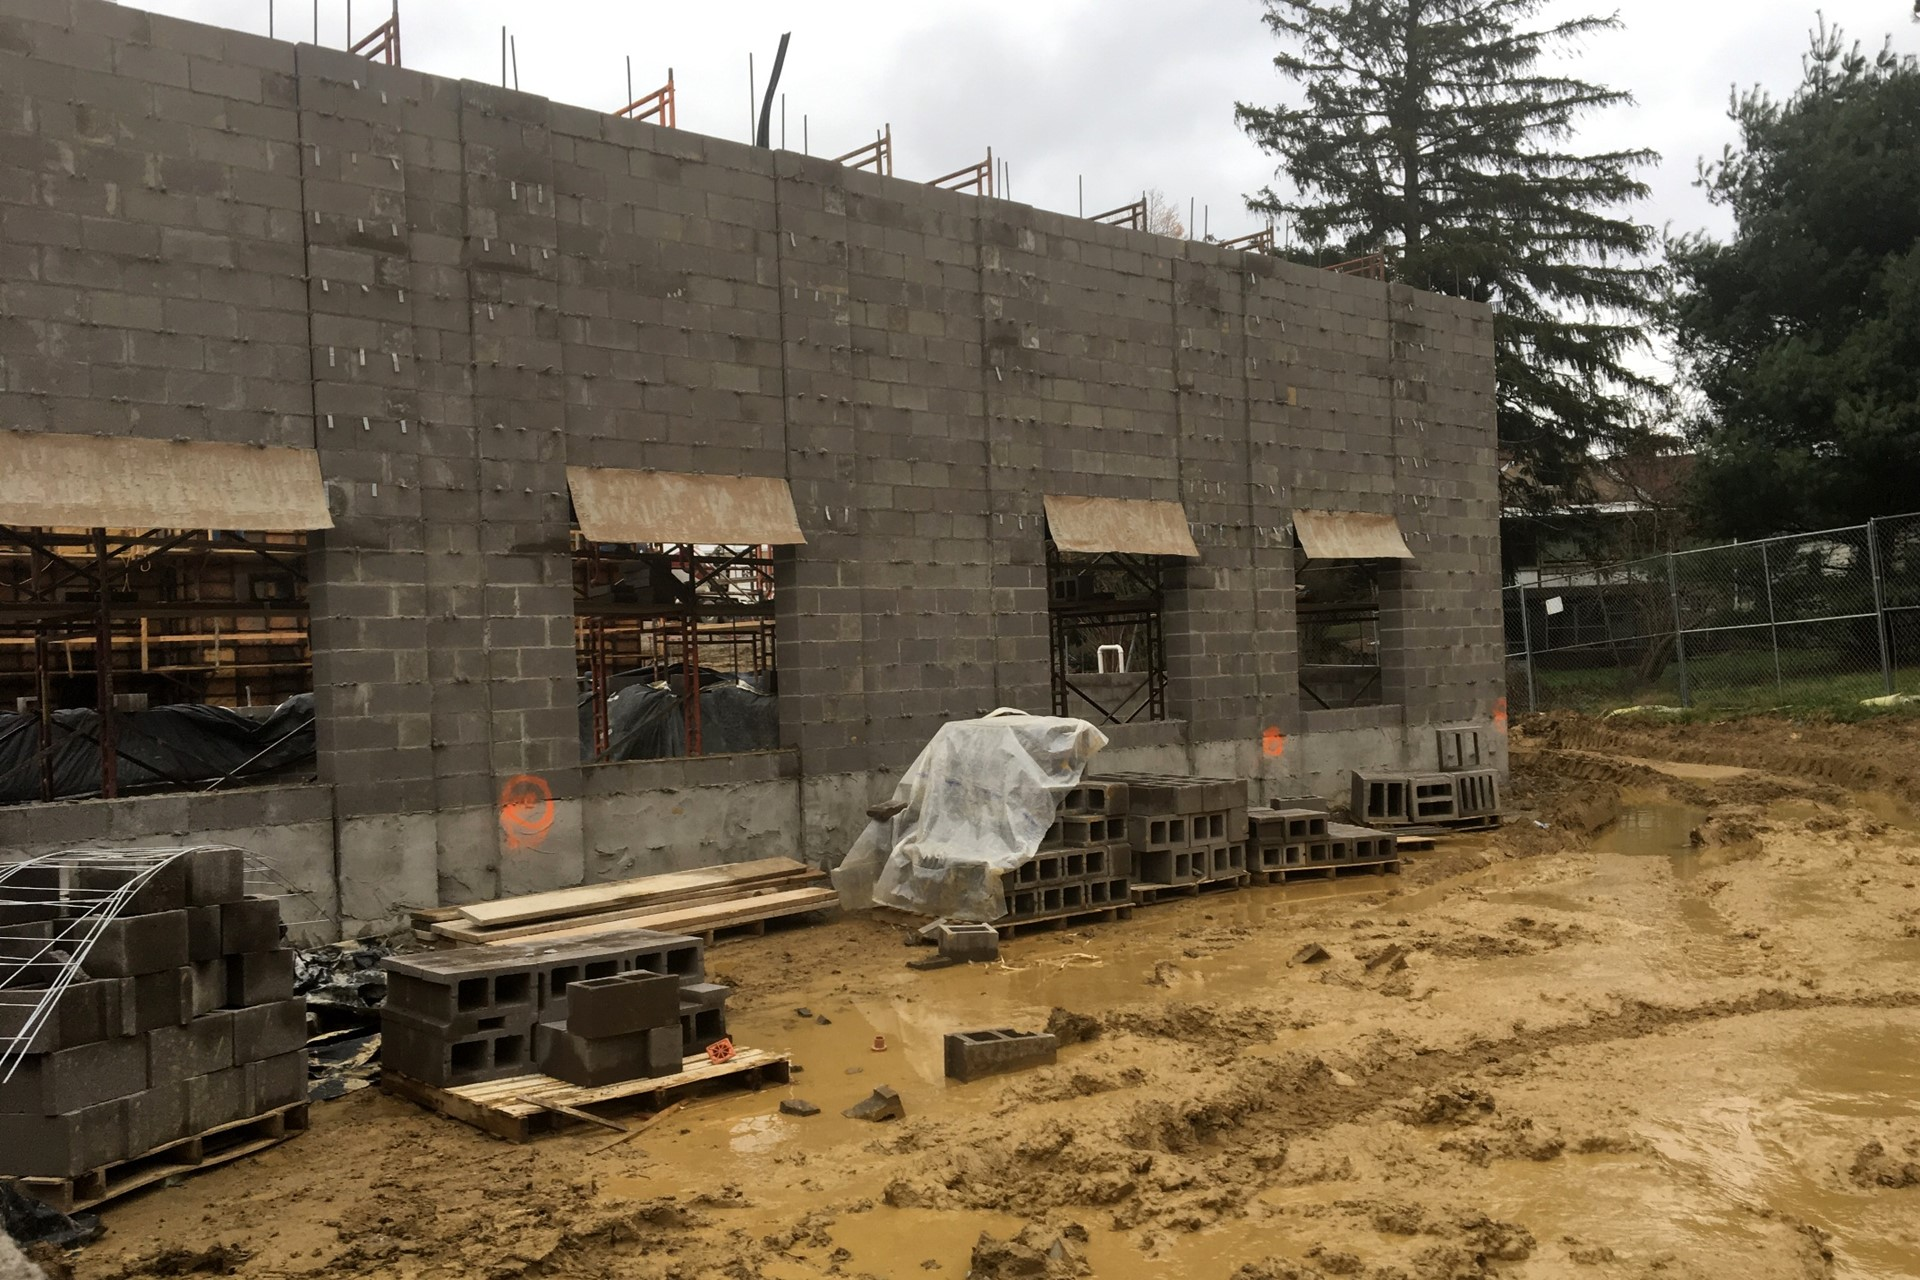 New school exterior wall construction